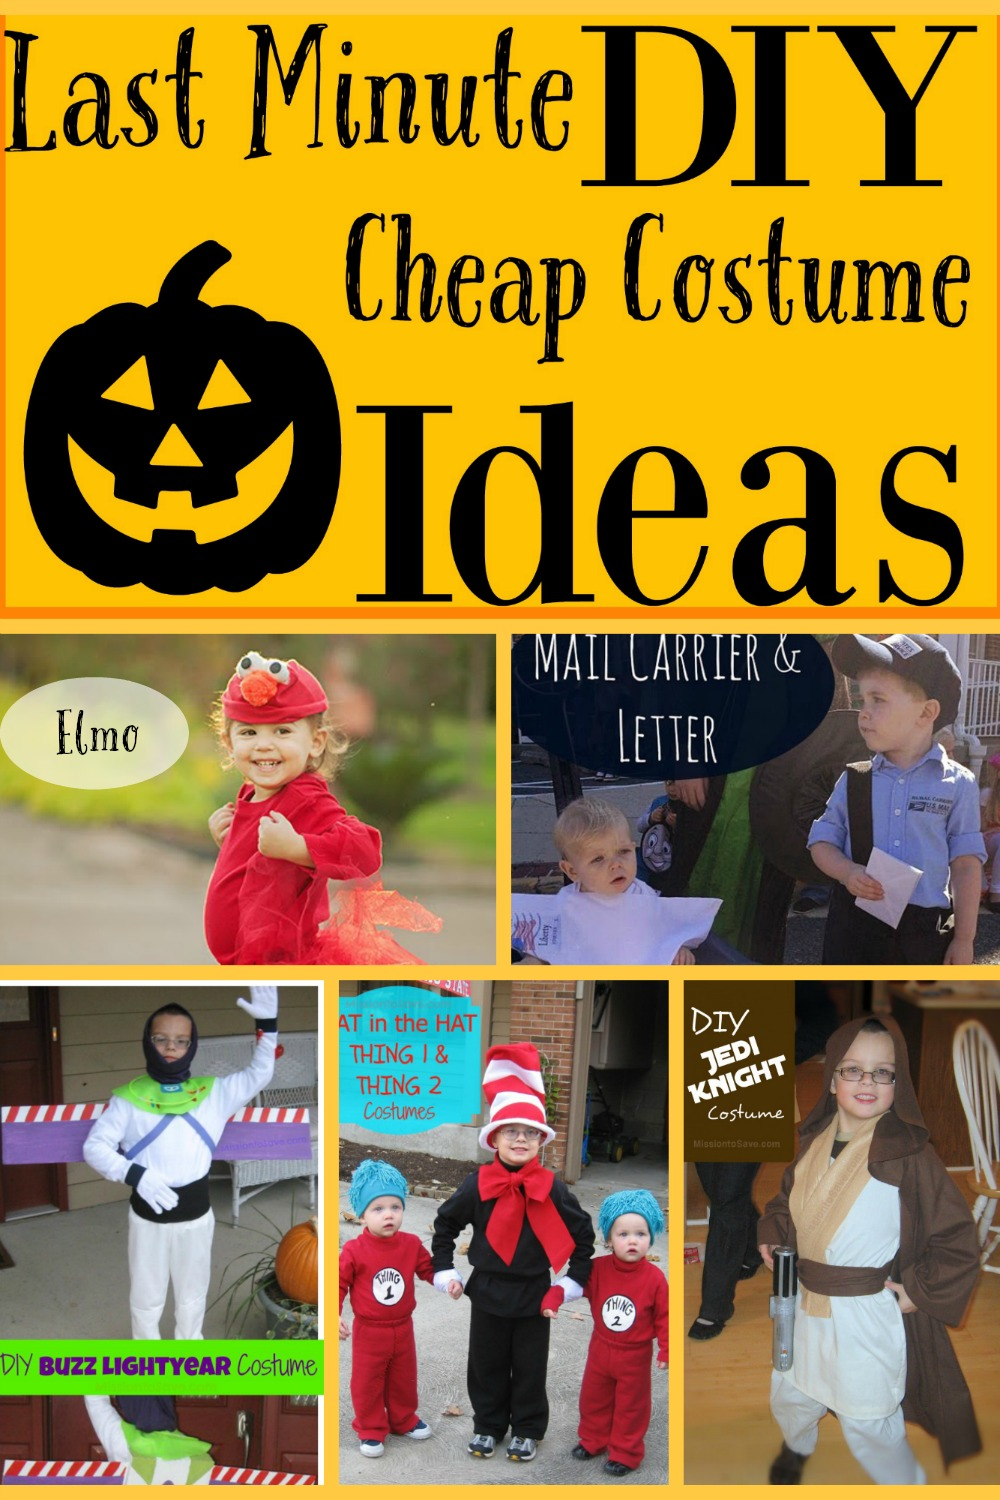 last minute diy cheap costume ideas